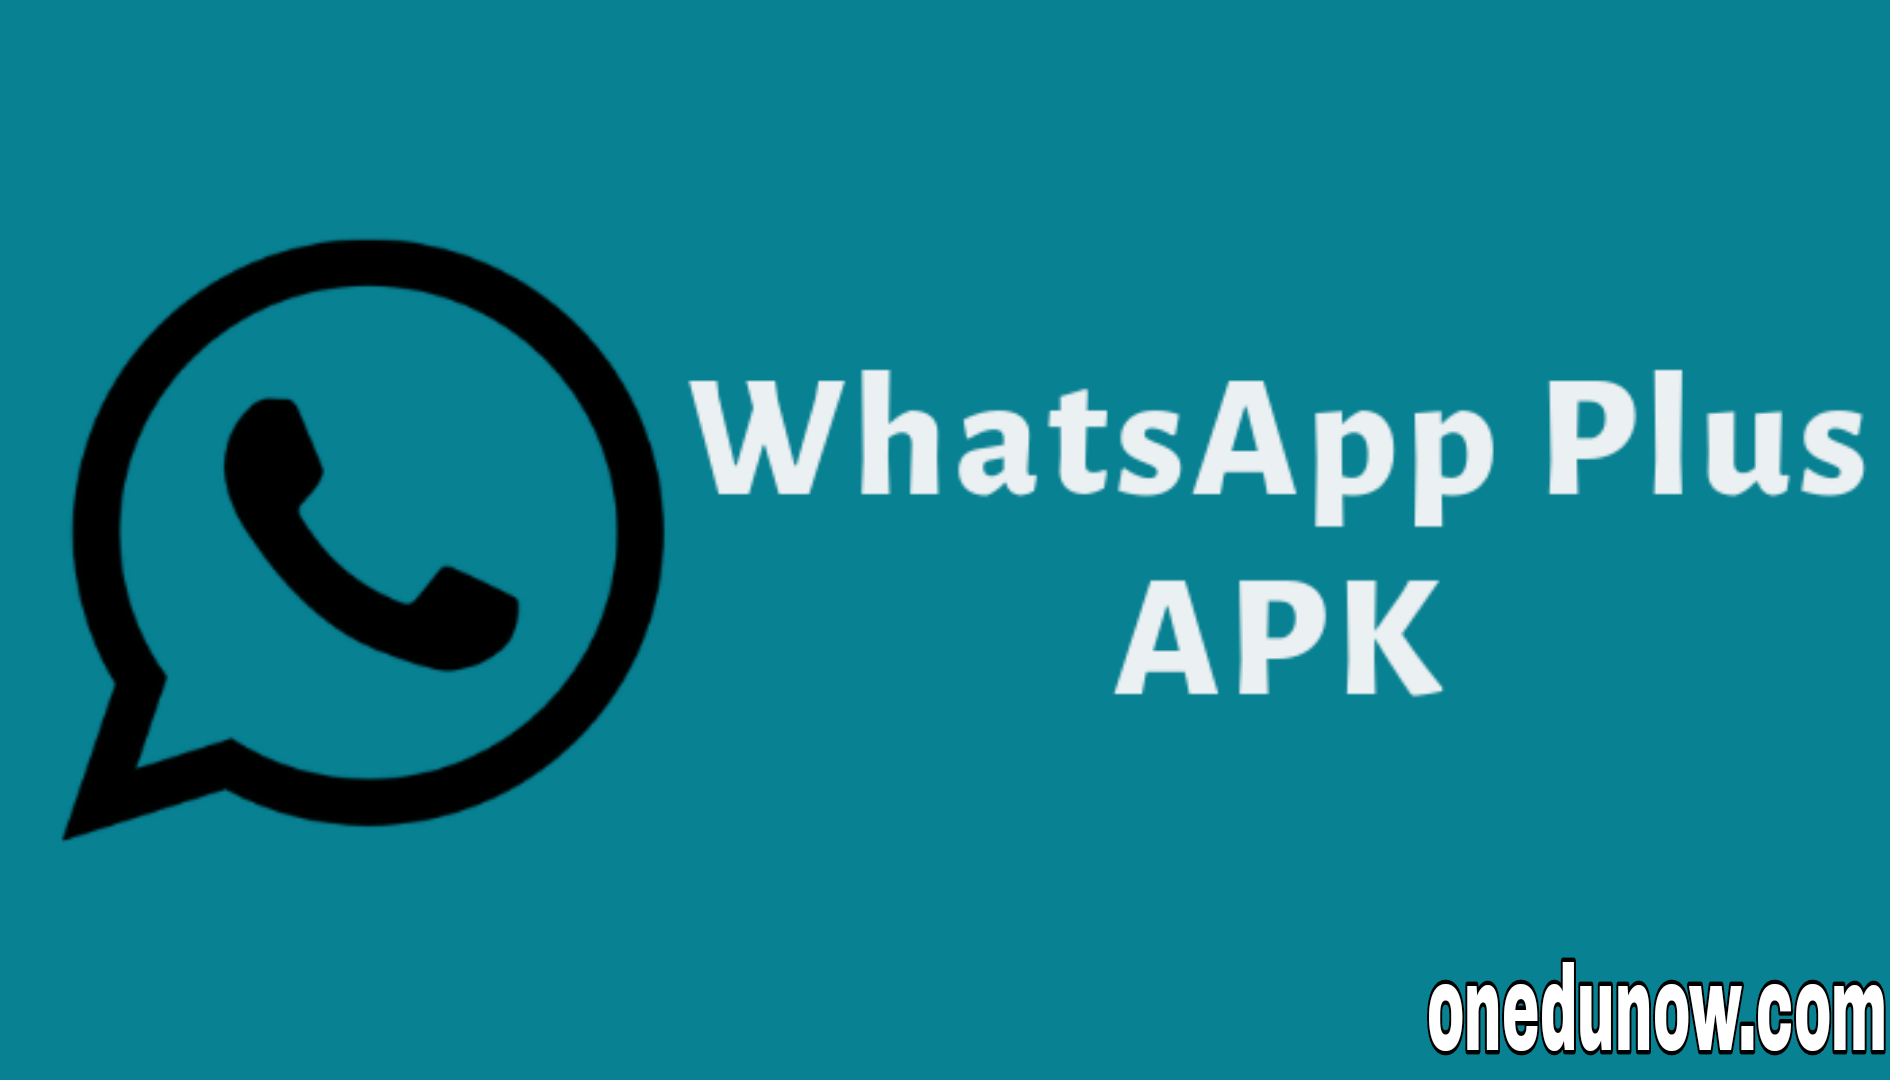 WhatsApp Plus APK Download (Many Features) 2021